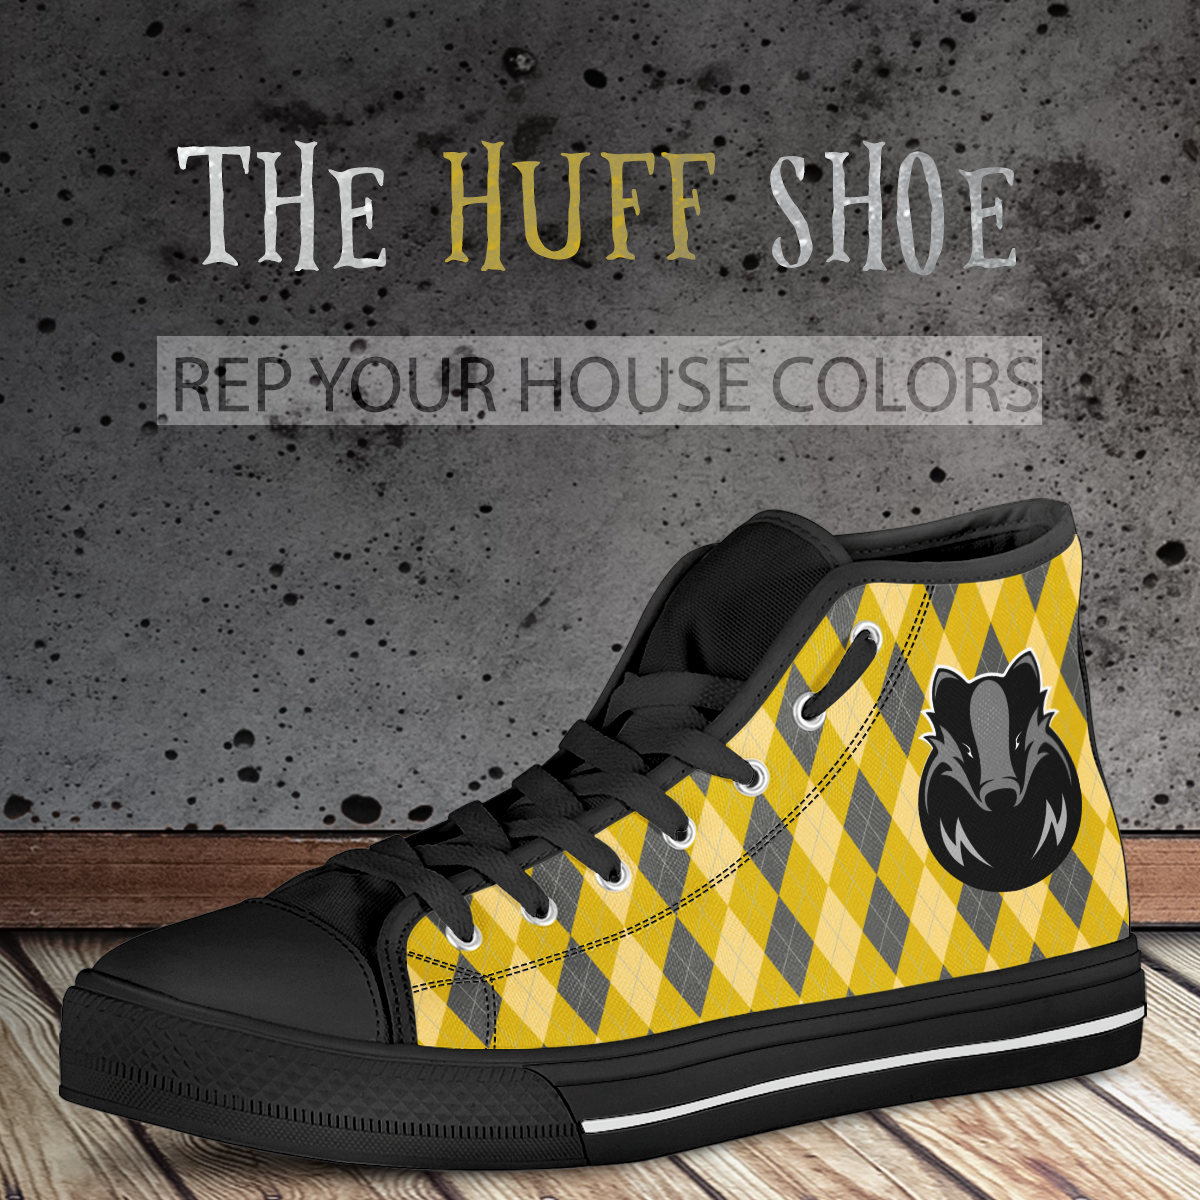 The Huff High Top Shoe